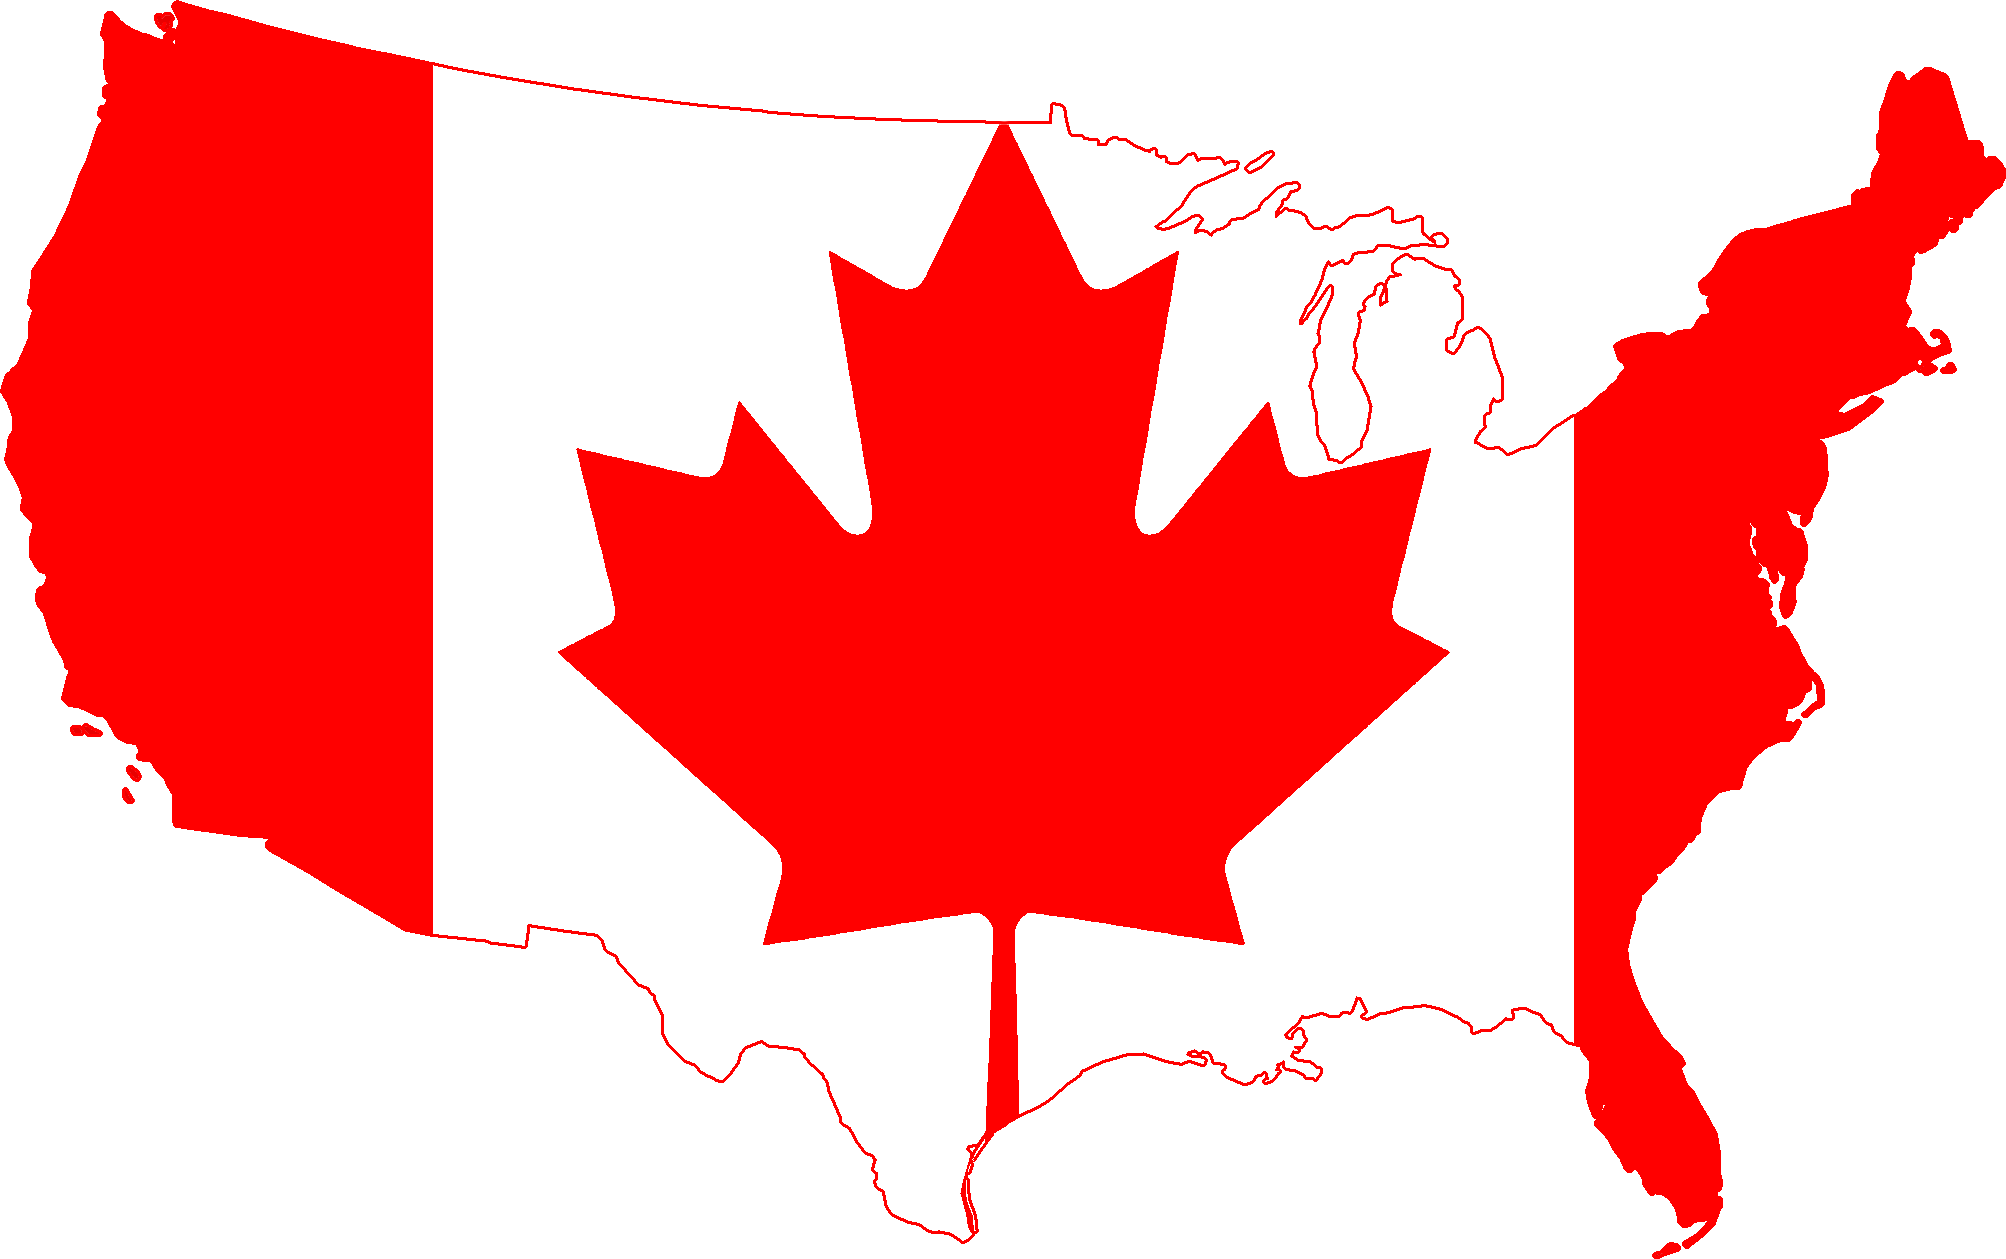 description-flag-map-of-the-united-states-canada-png-u5kTnT-clipart